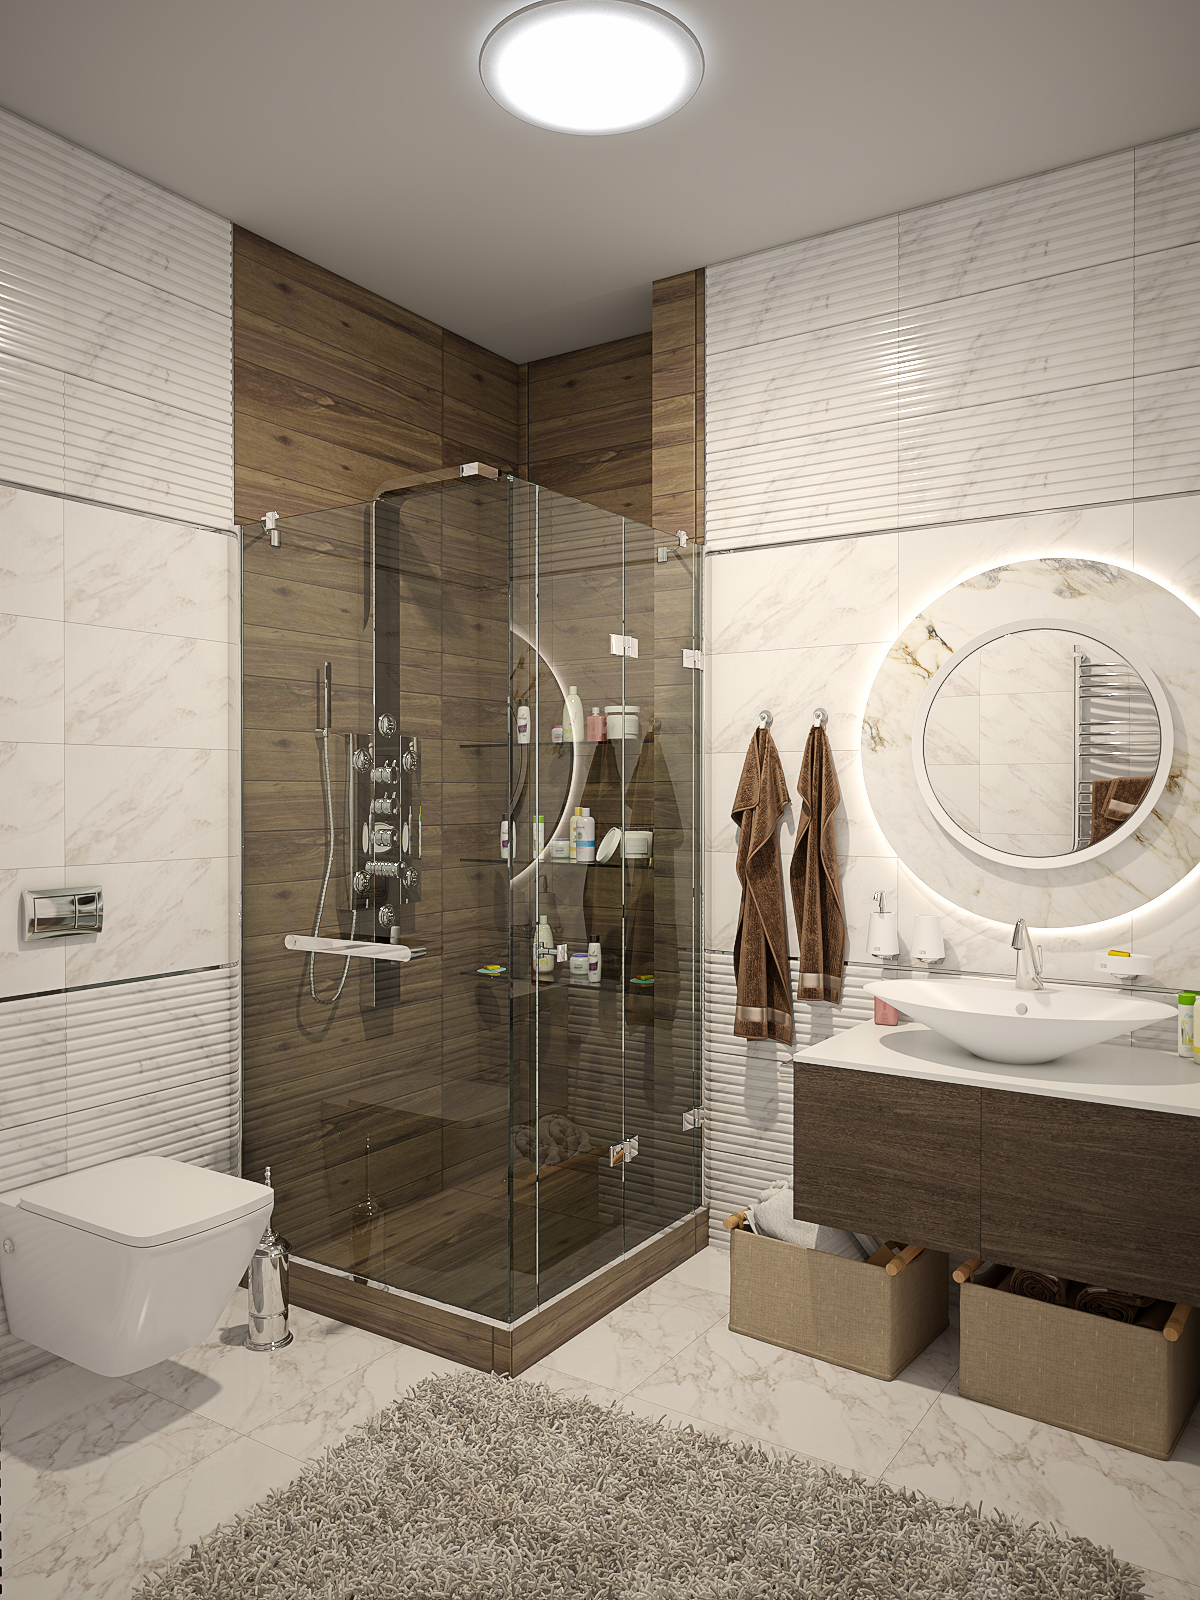 Bathroom design in 3d max vray 3.0 image